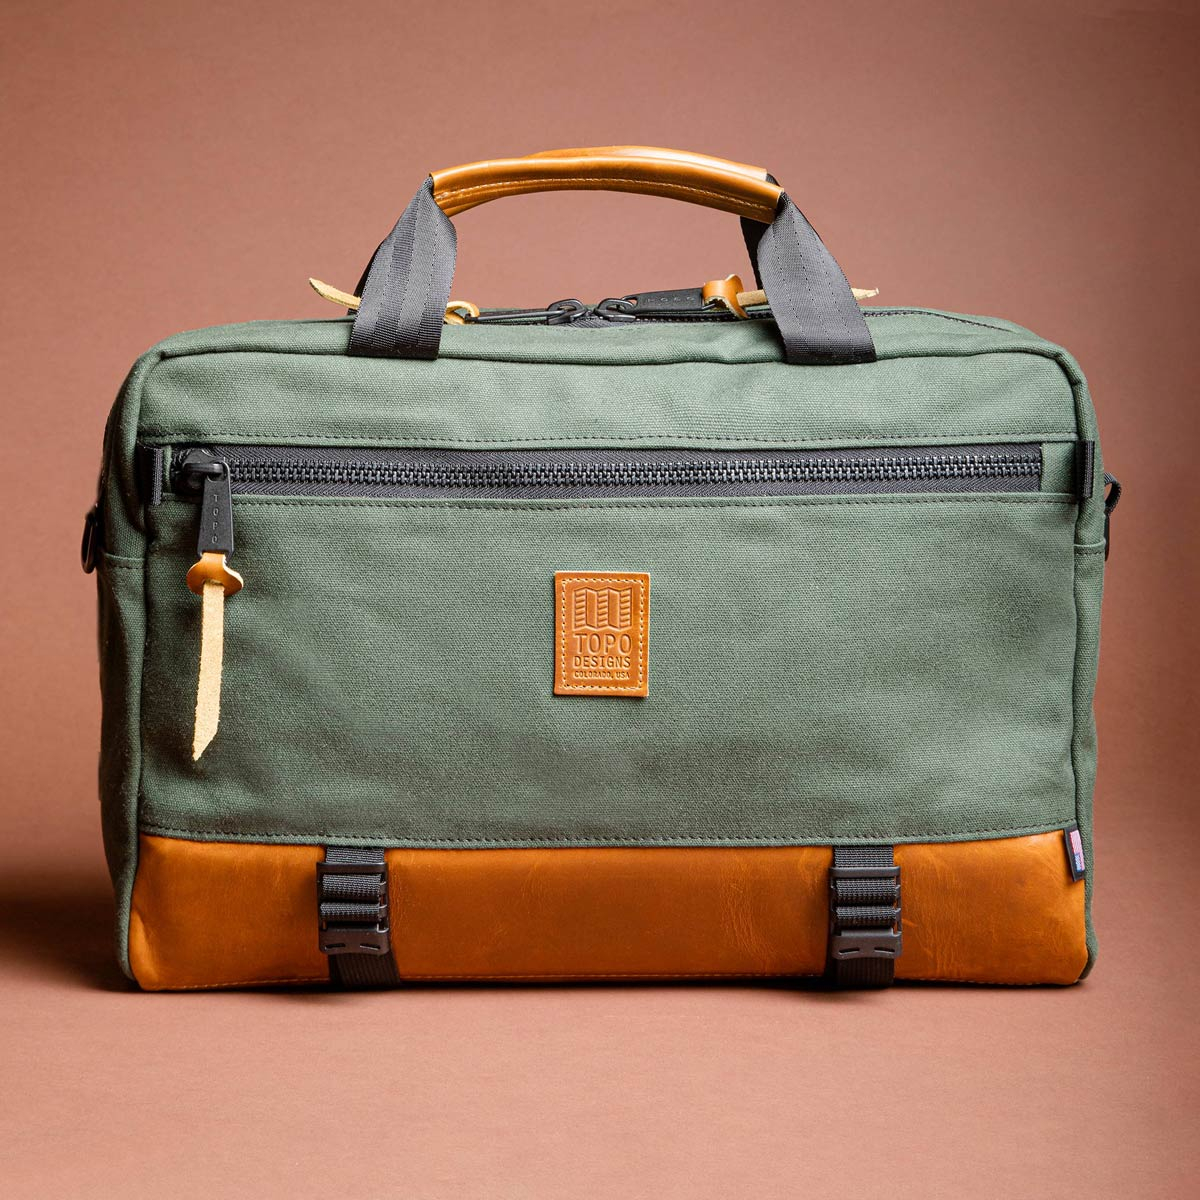 Topo Designs Commuter Briefcase Heritage Olive Canvas/Brown Leather, perfect for everyday carry